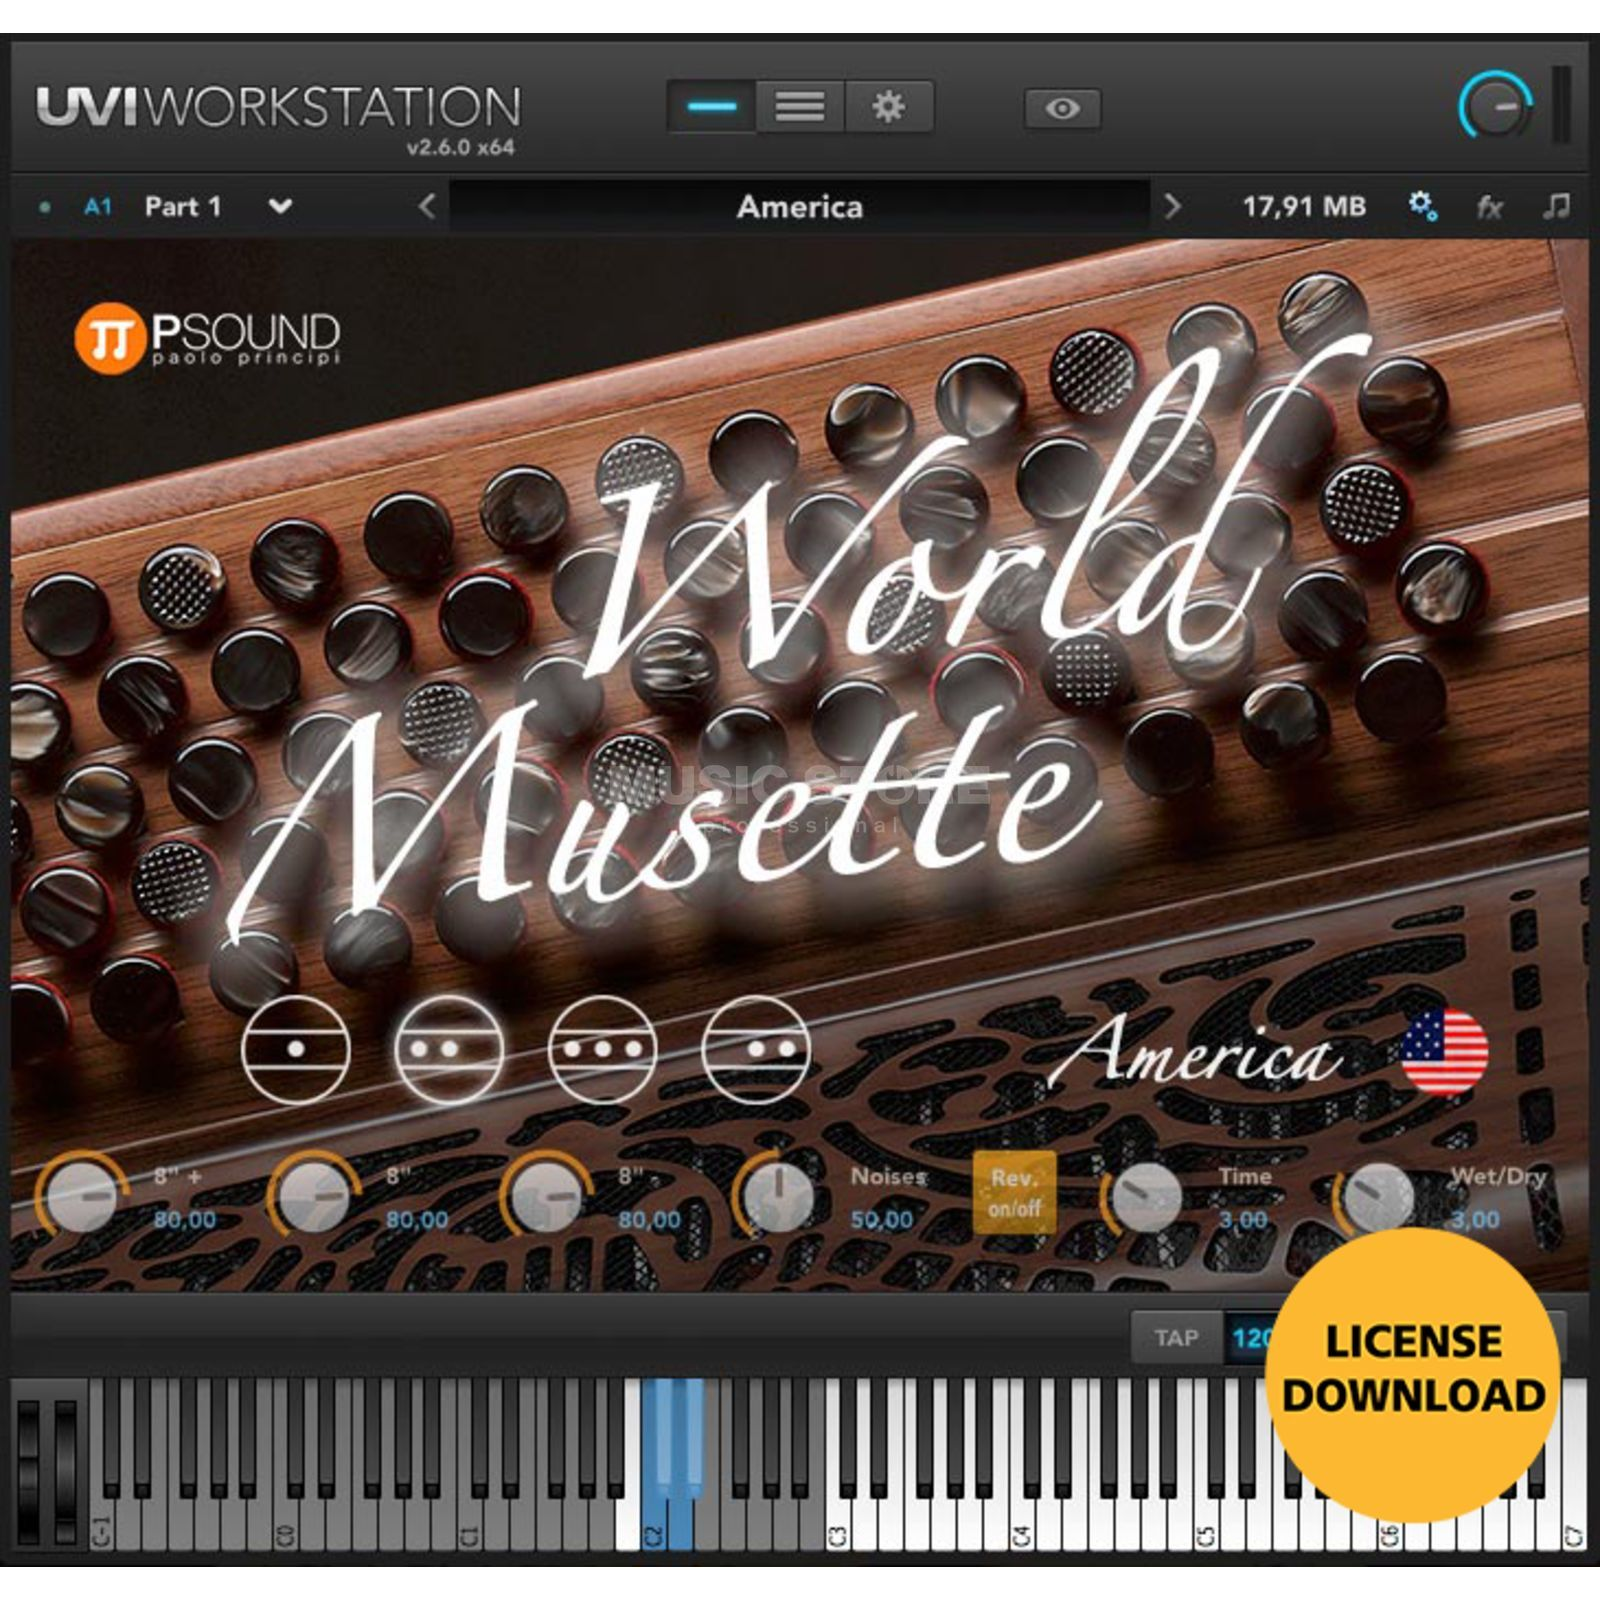 PSOUND PAOLO PRINCIPI World Musette Accordeon License Code Product Image